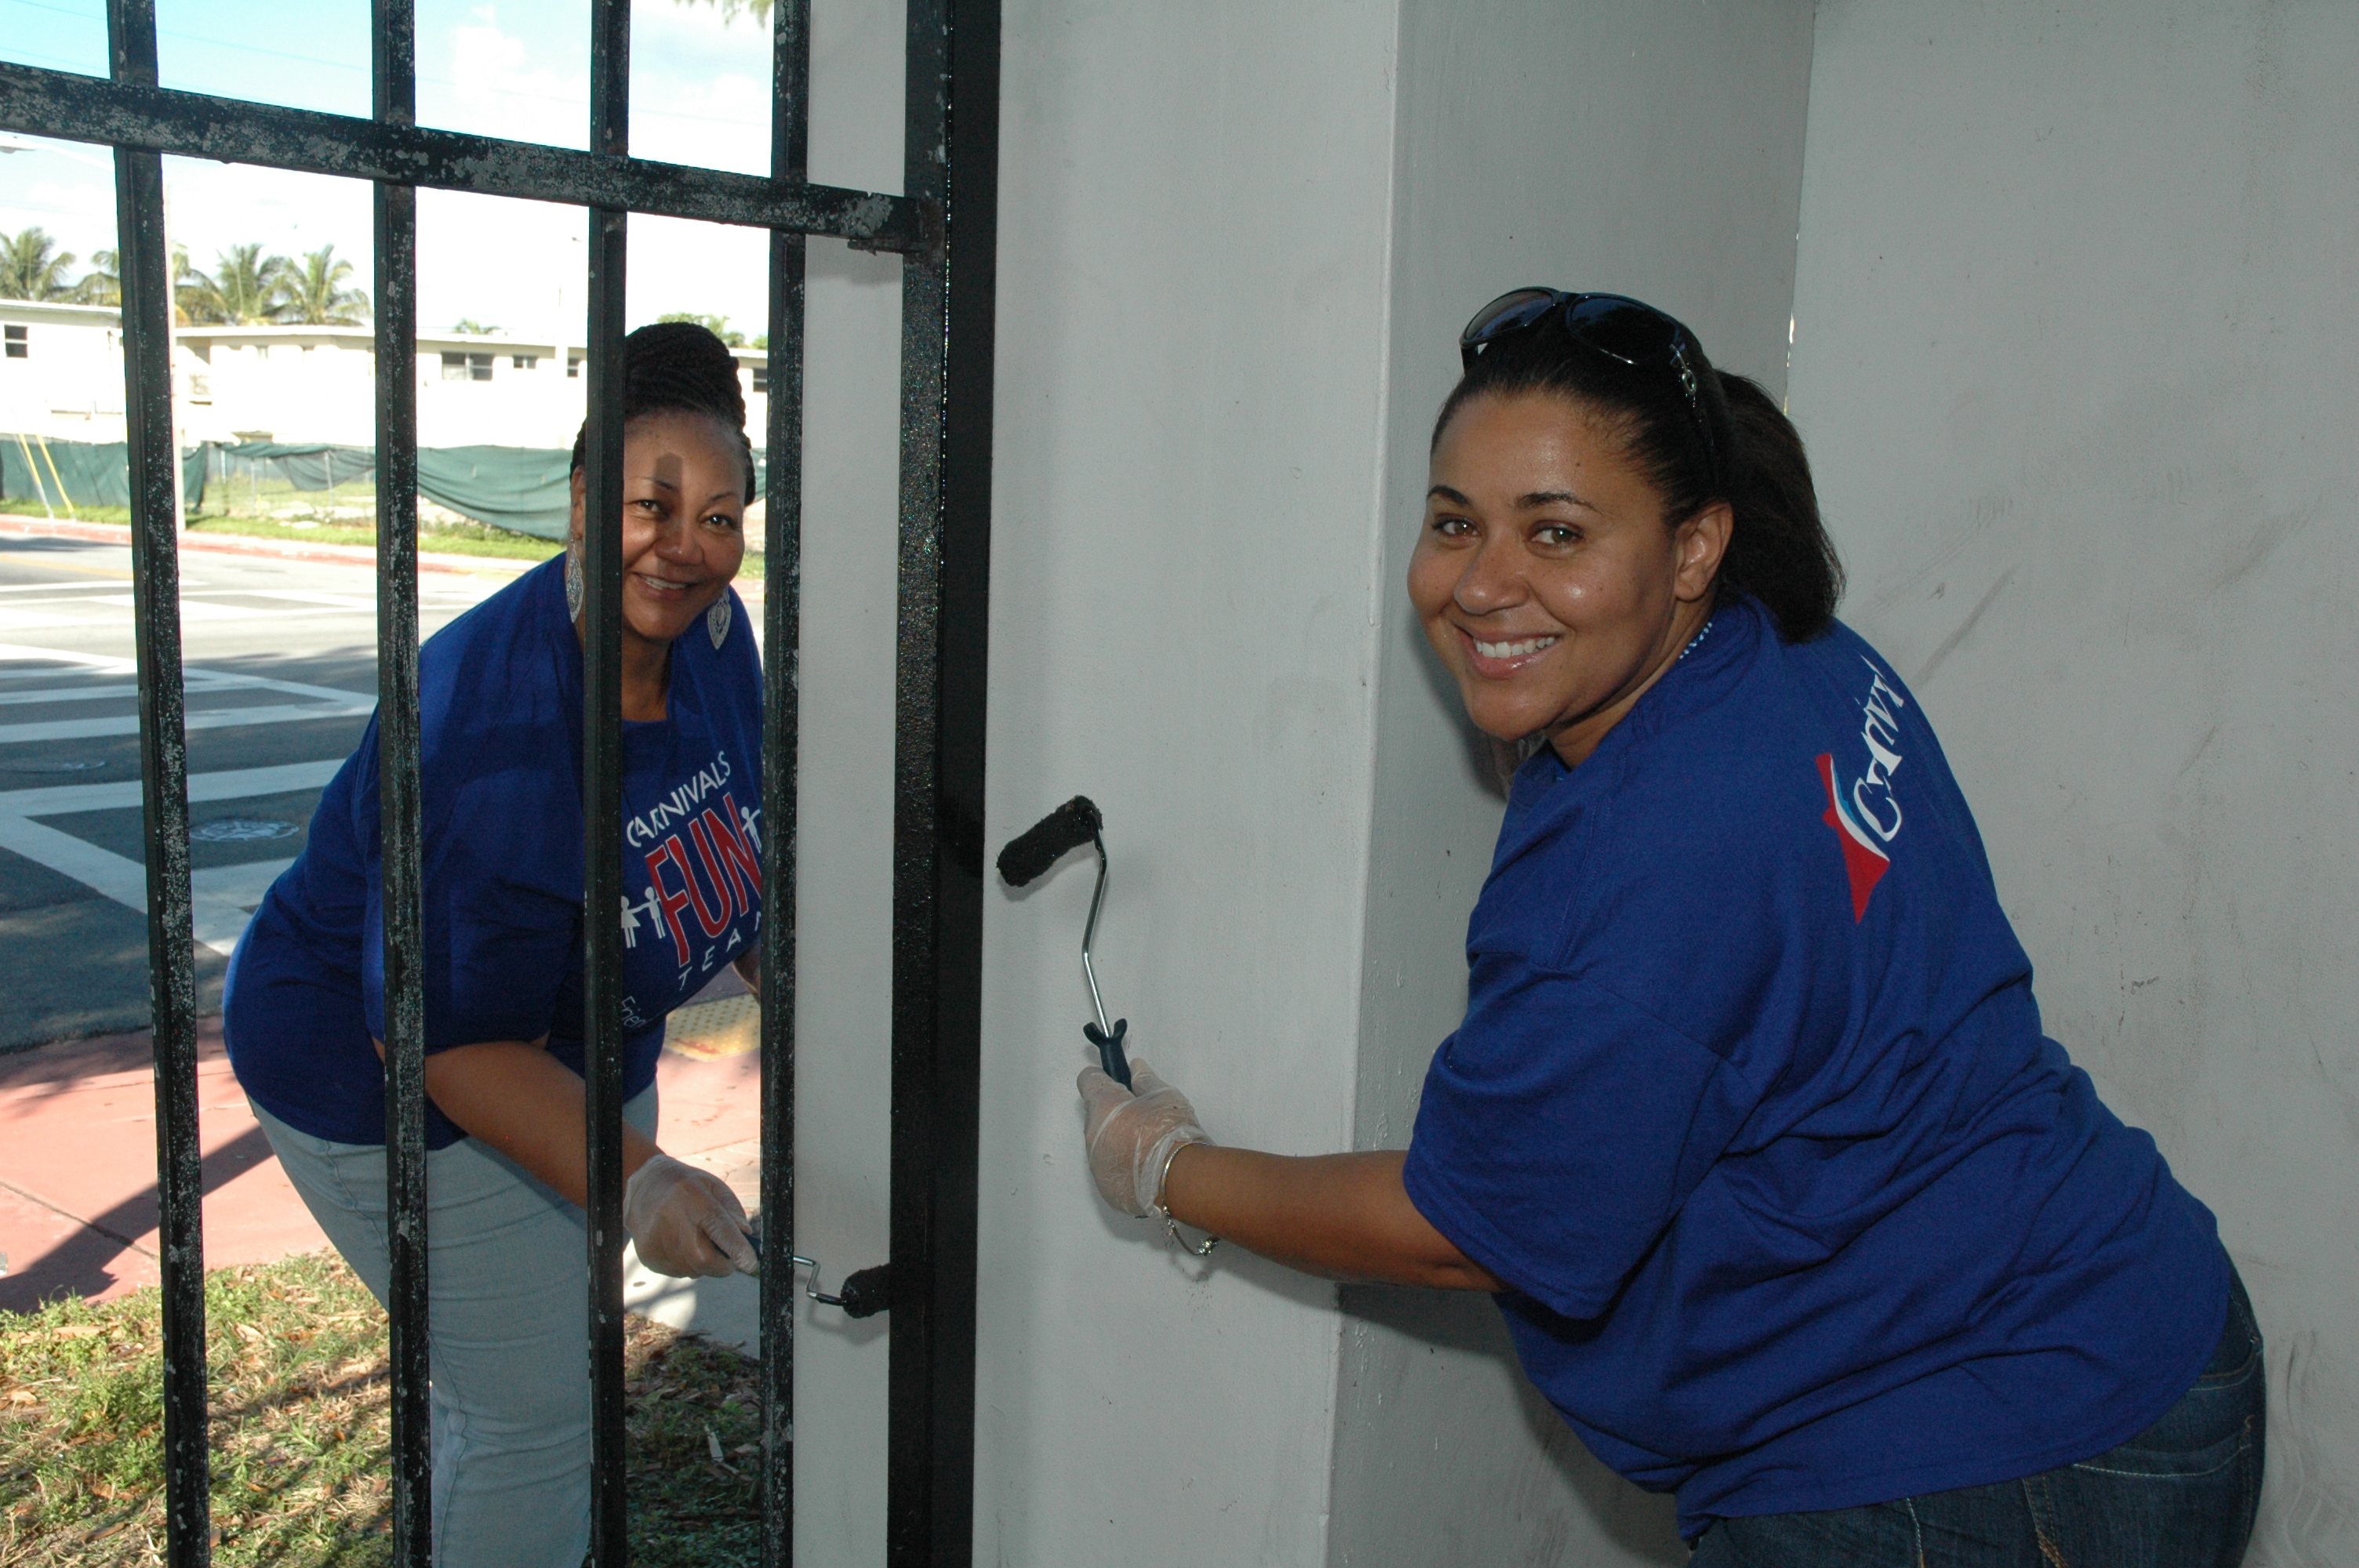 More Than 40 Carnival Employees Participate in CLIA's International Volunteer Day Event on Miami Beach